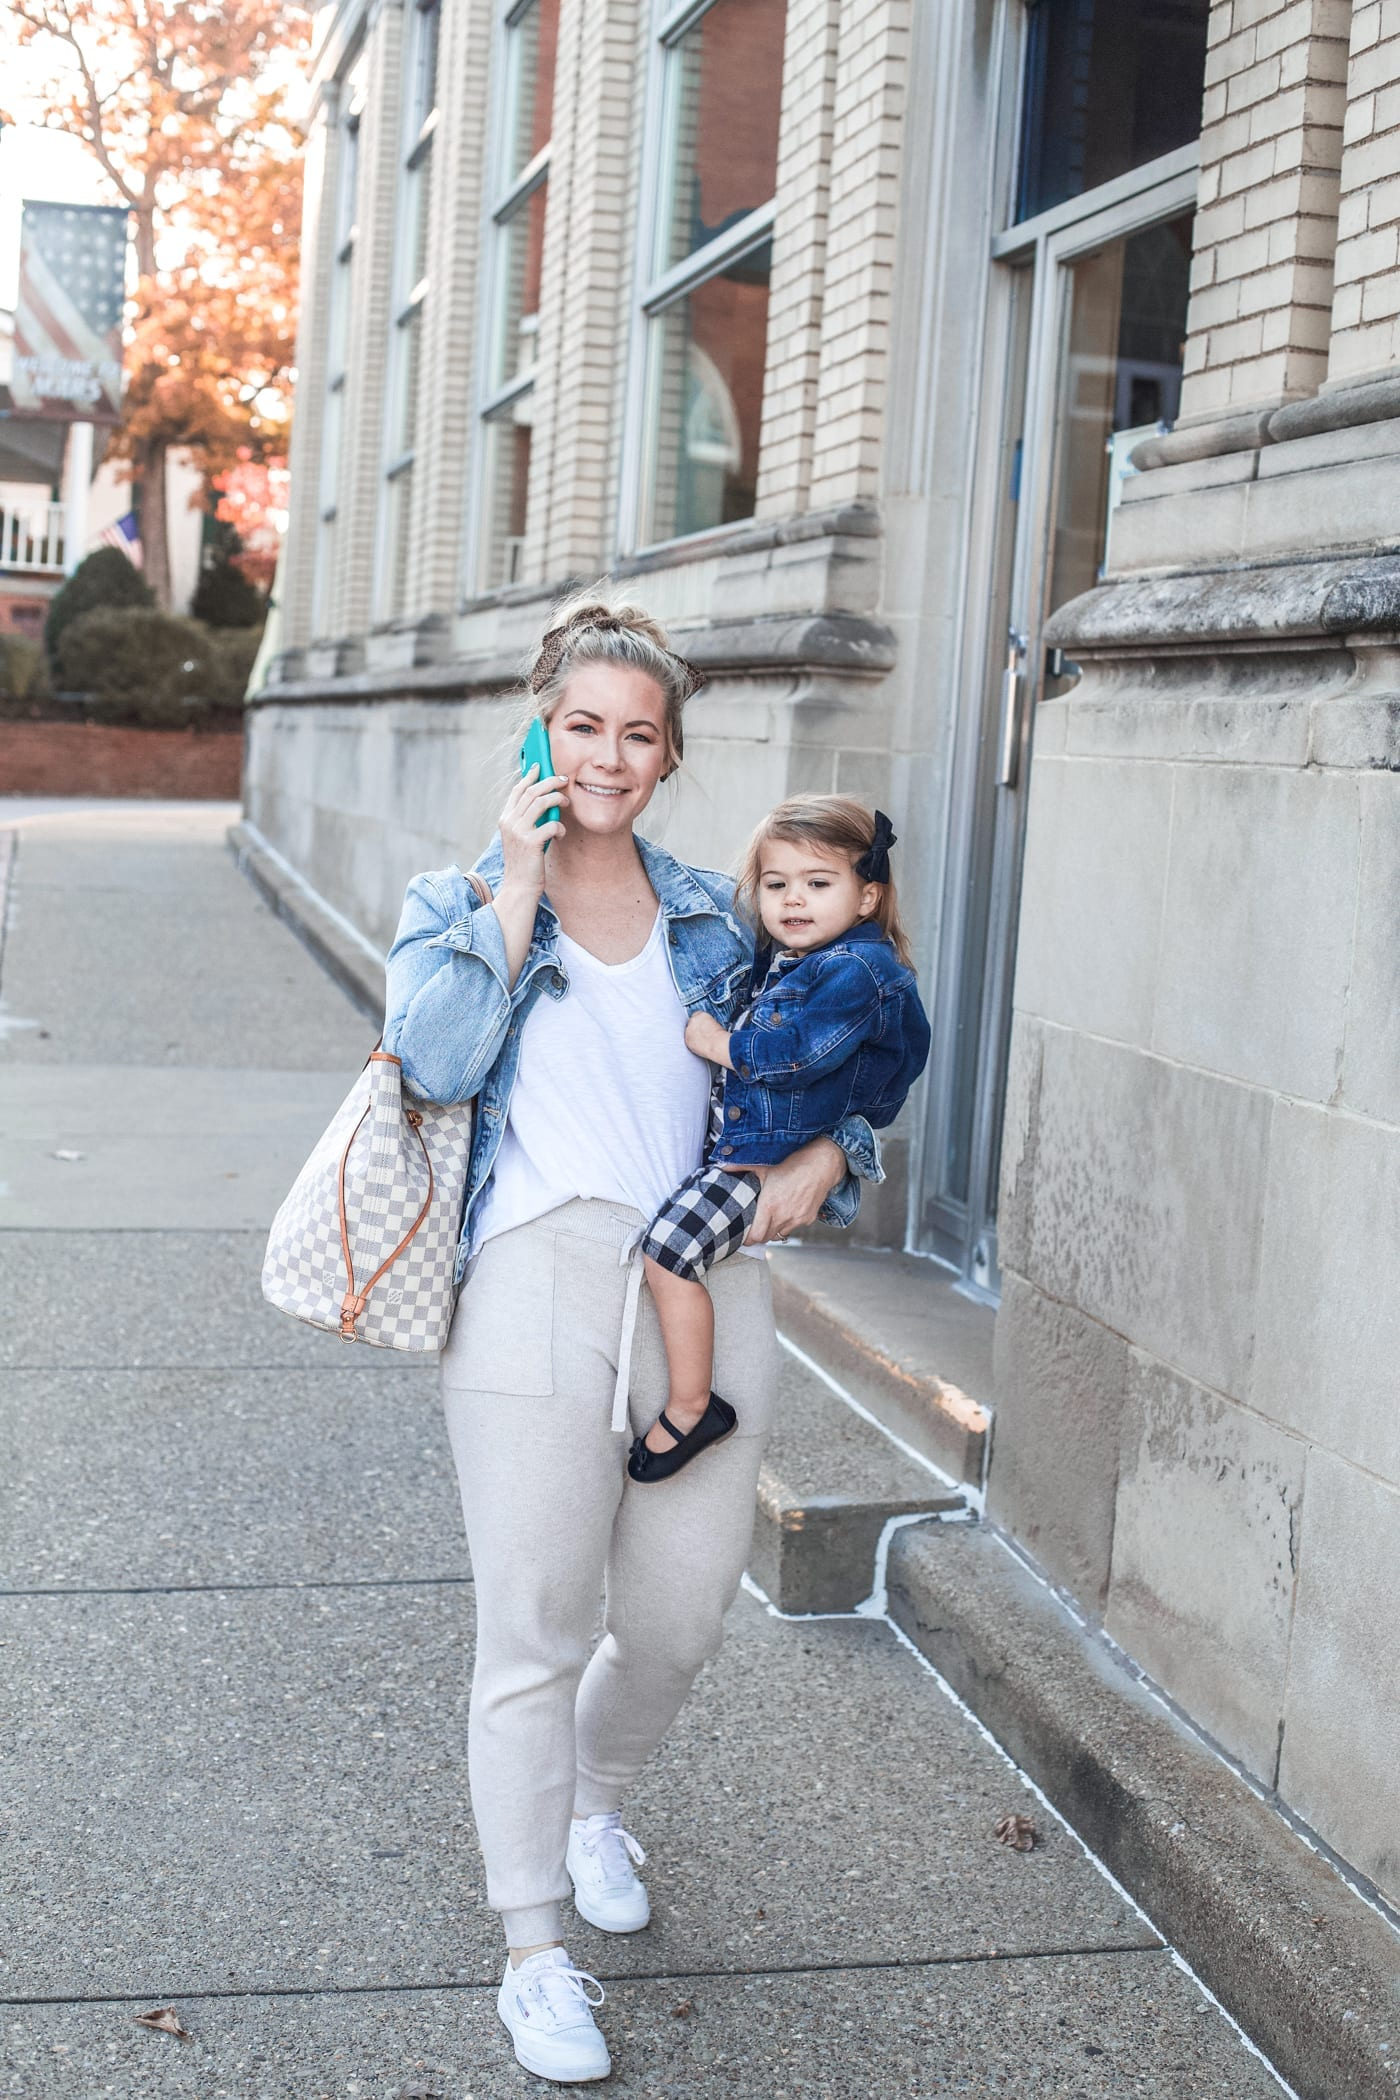 A Mom's Best Friend: The Tech21 Antimicrobial Phone Case